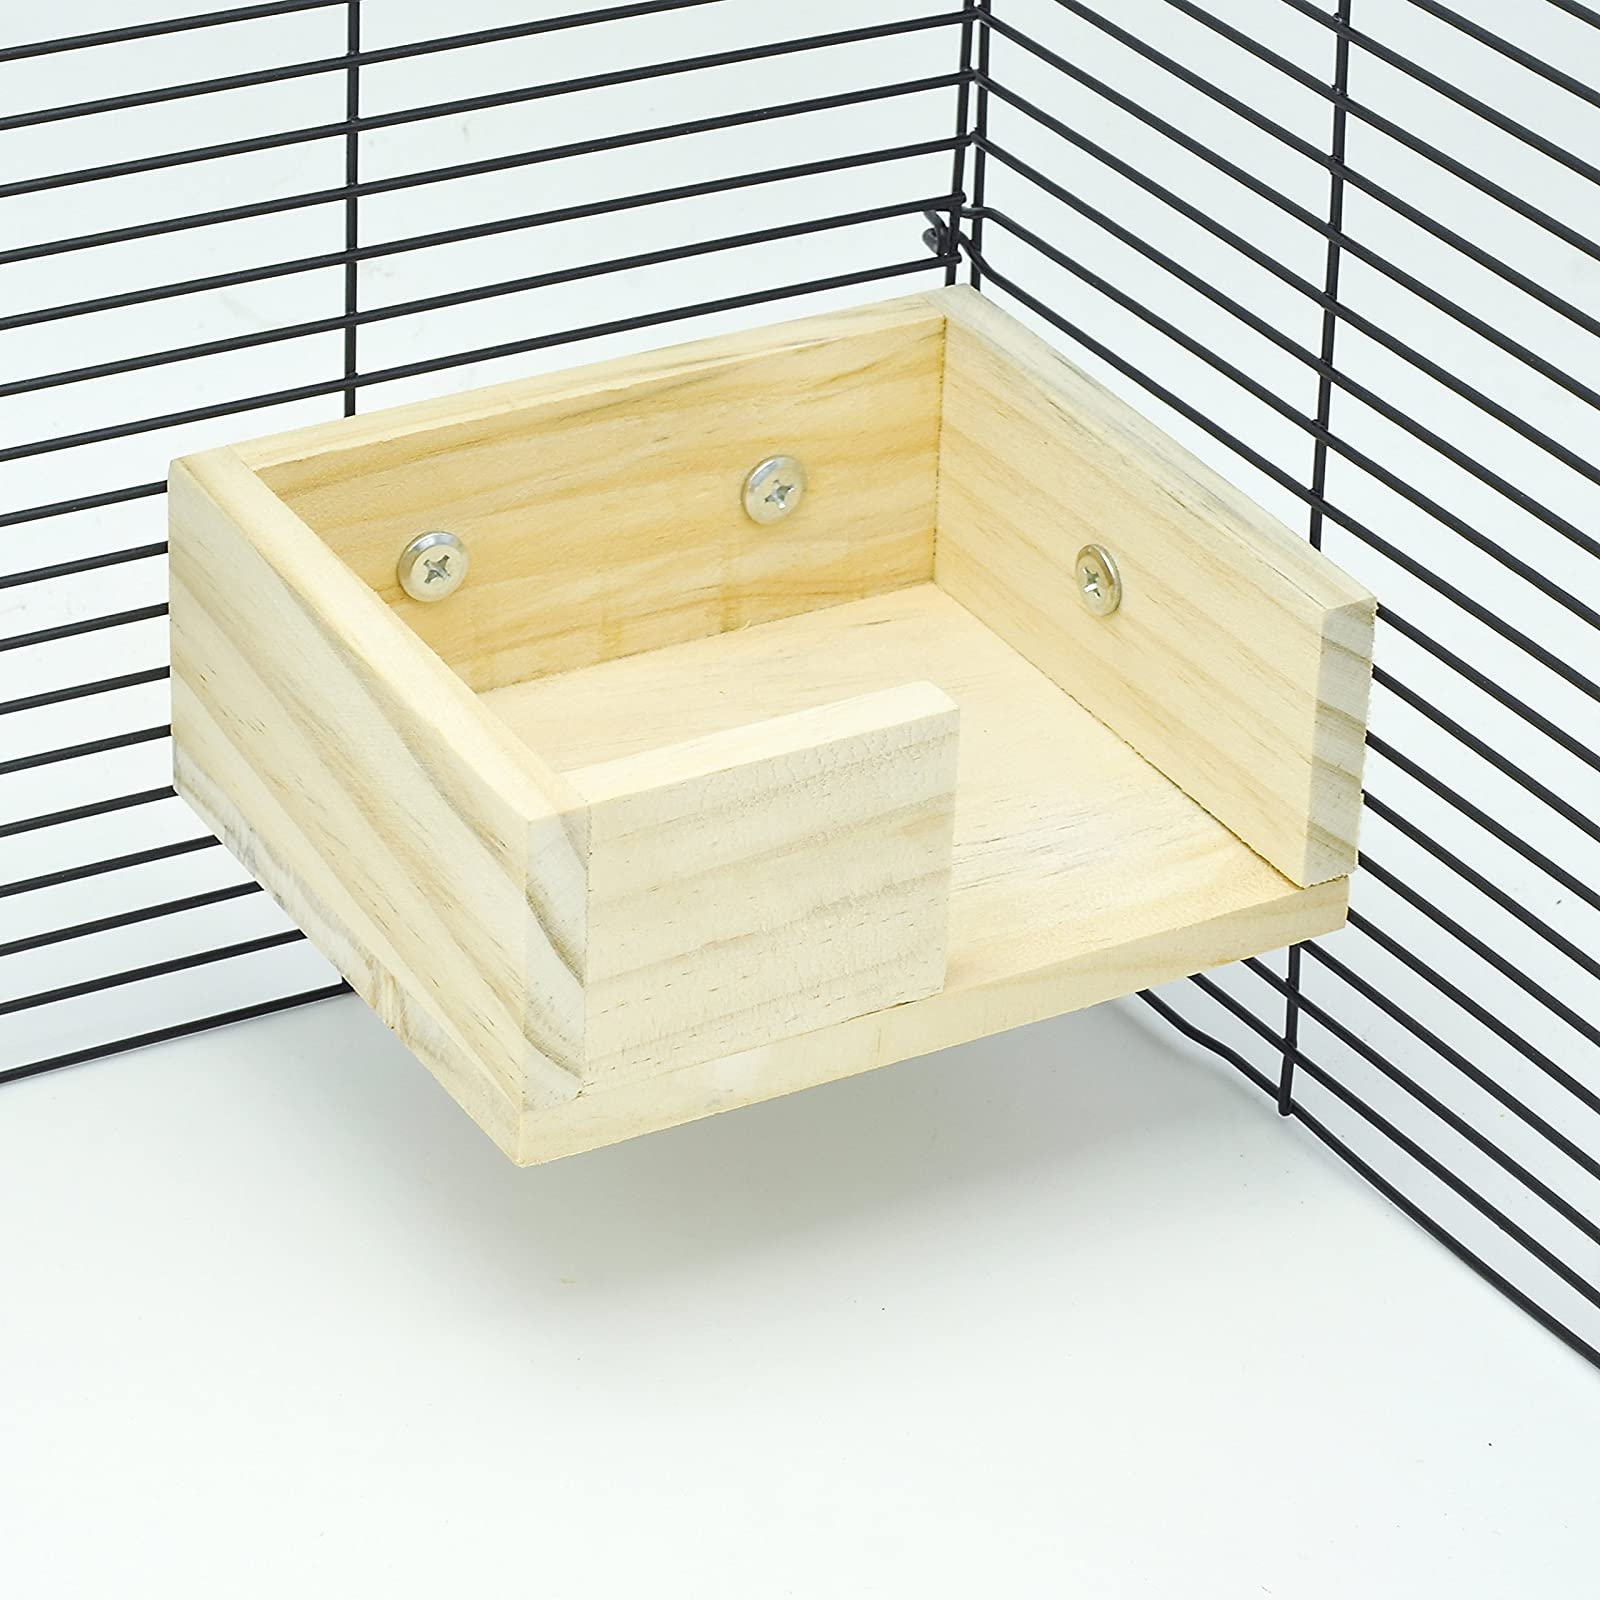 Niteangel Wooden Hamster Mouse Small Animals Lookout - 2